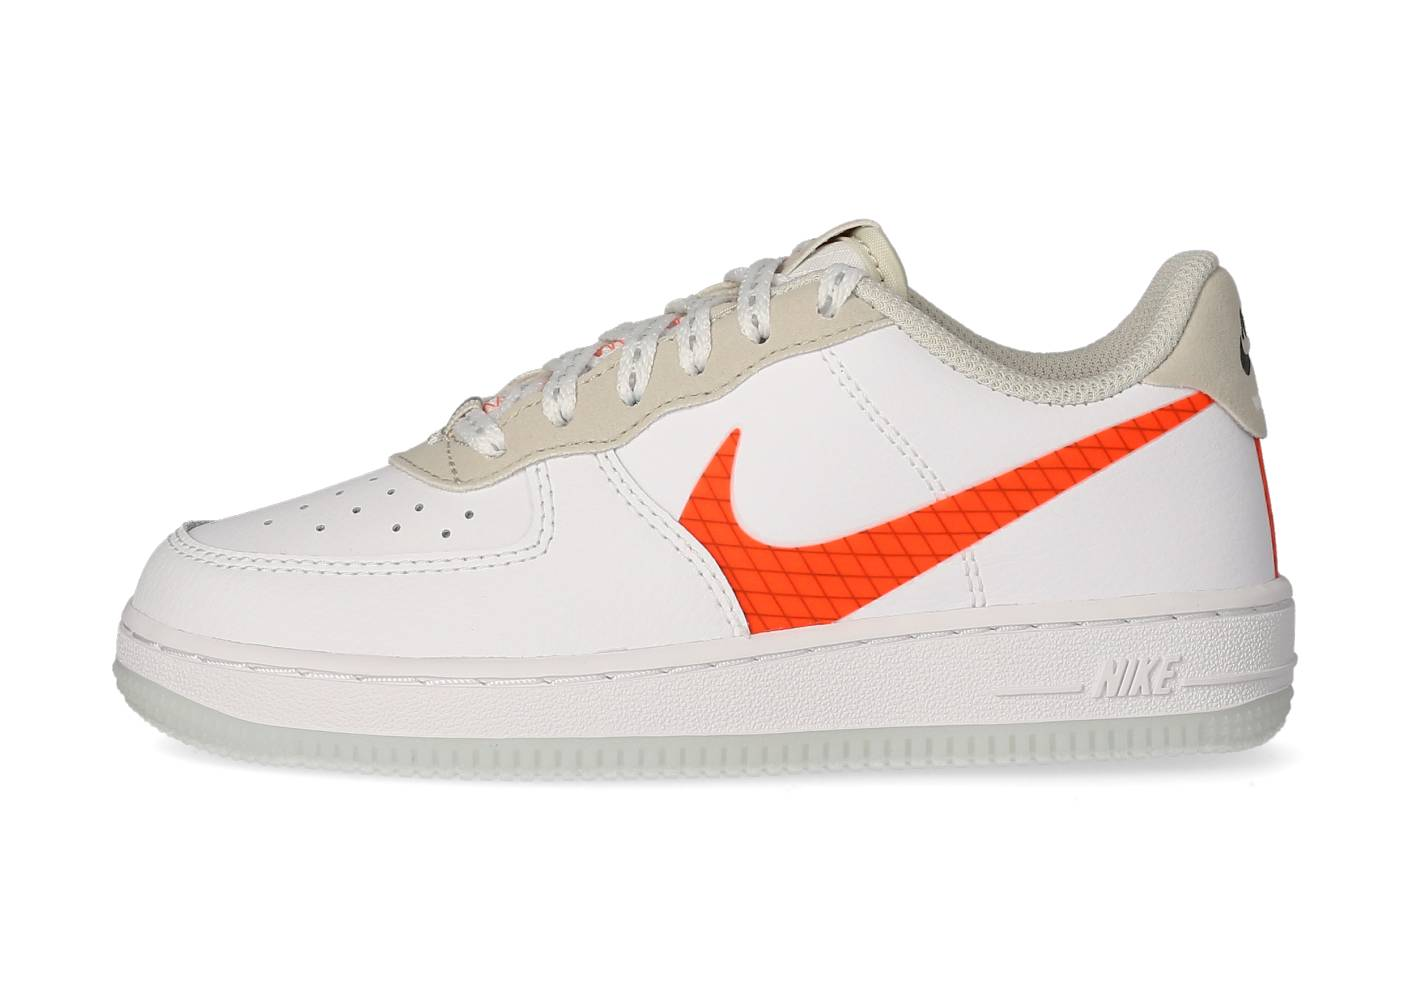 Nike Baskets Nike Force 1 Lv8 Blanche Et Orange Enfant 35